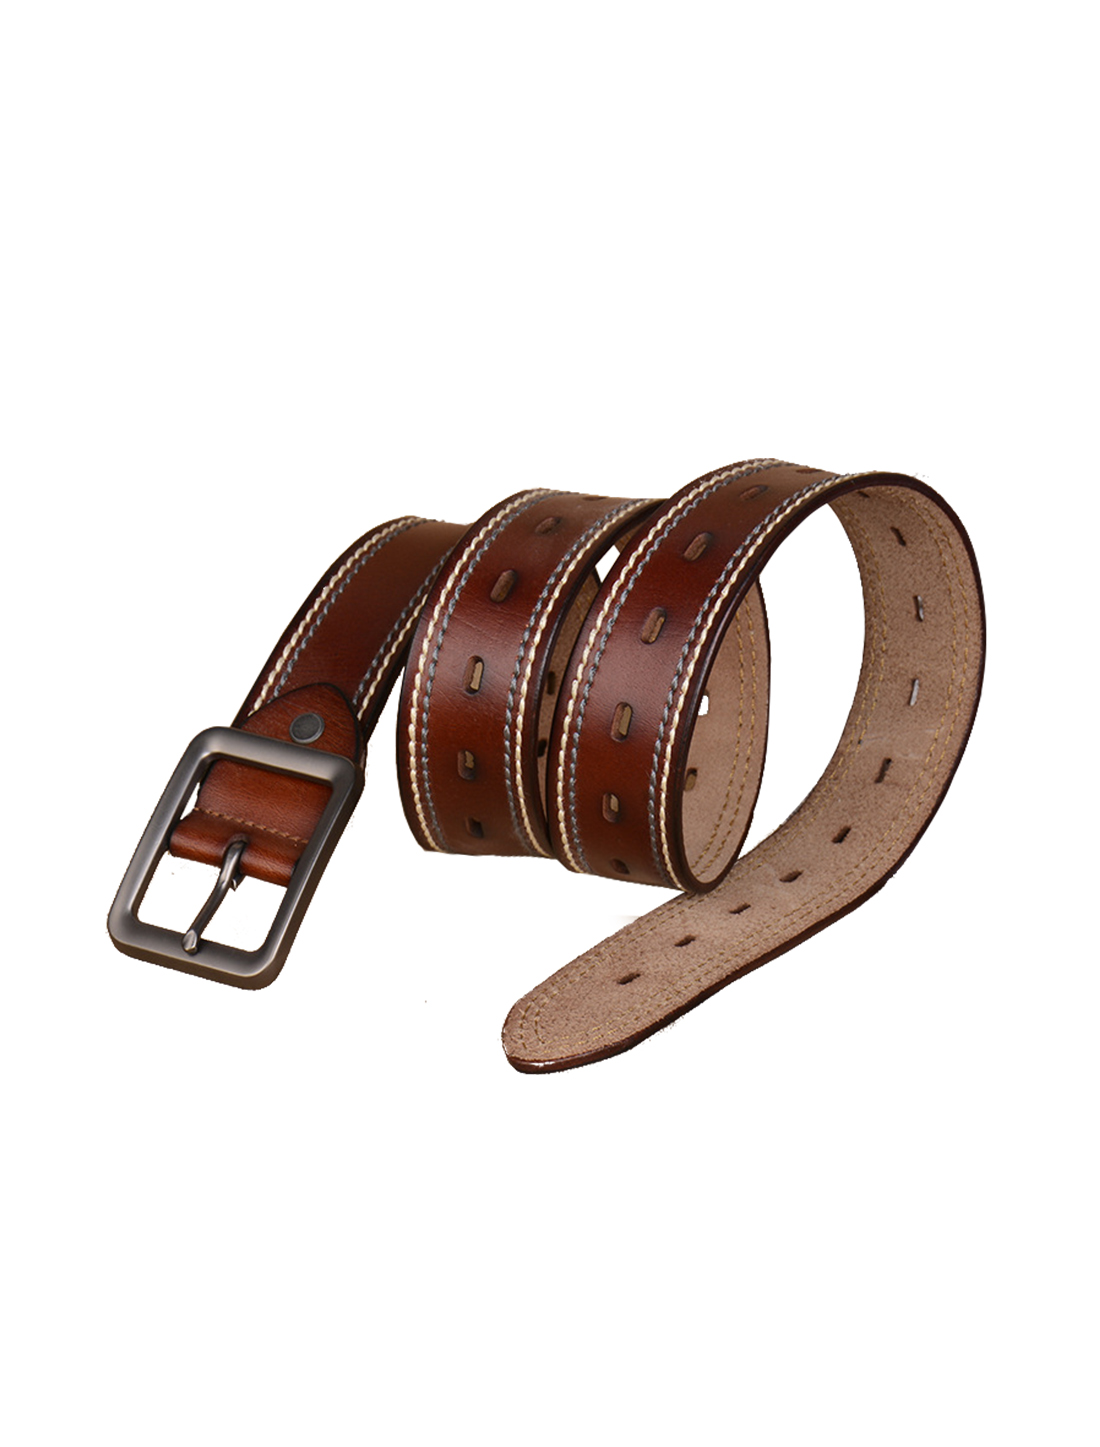 Men Casual Stitching Single Pin Buckle Leather Belt 39mm Width 1 1/2 Brown 110cm